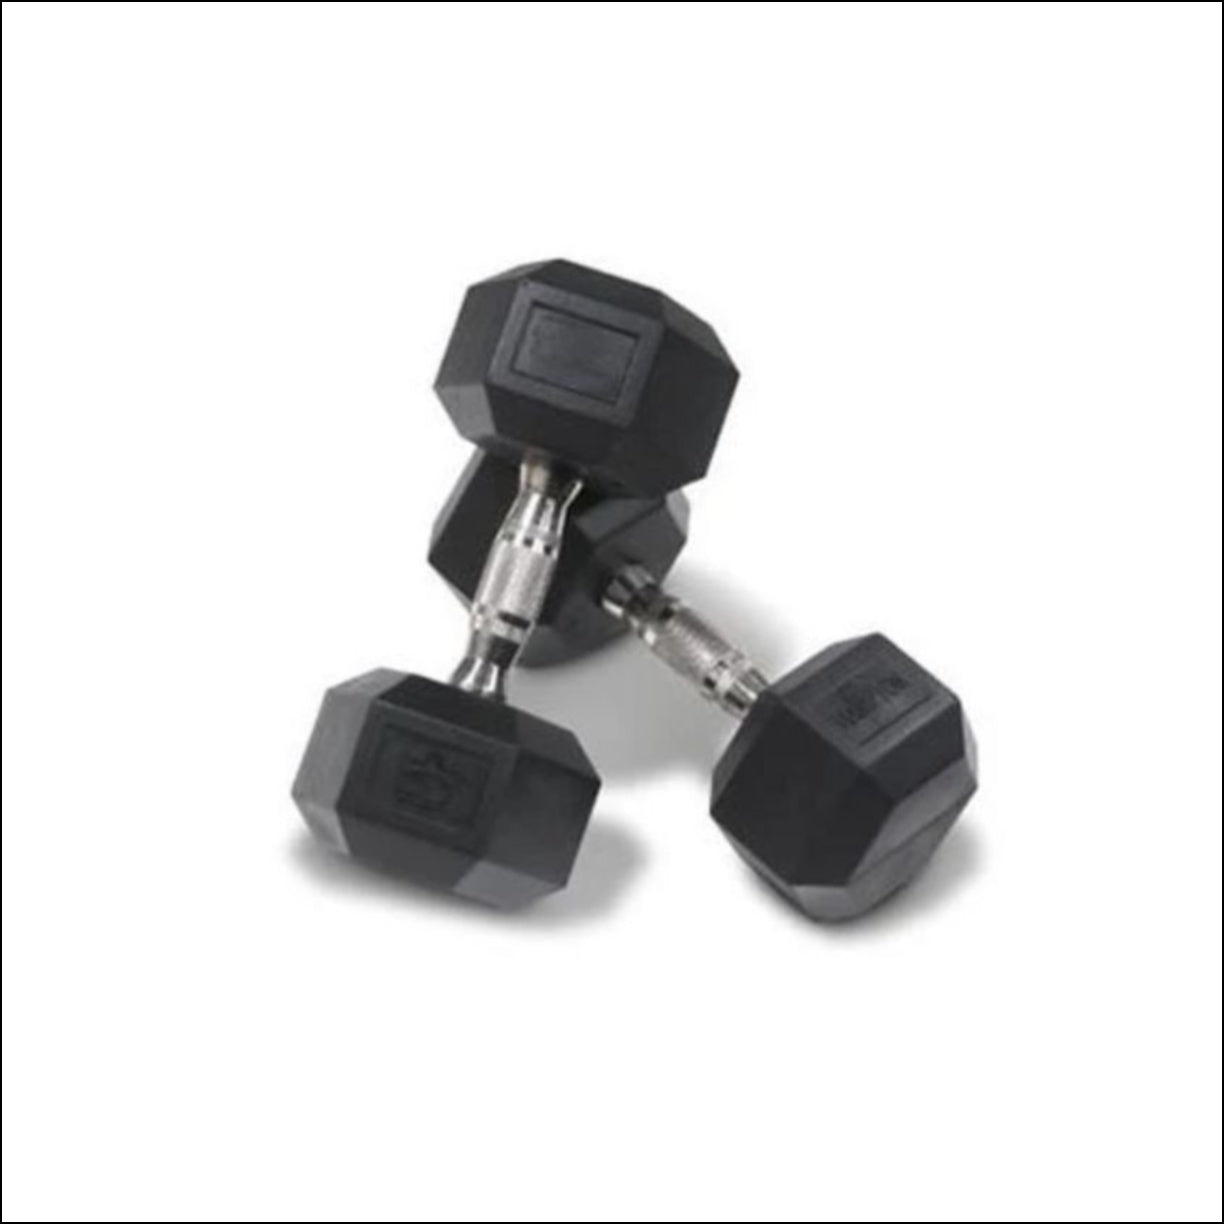 PAIR OF 45-KG RUBBER HEX DUMBBELLS  Muscle Motion Rubber coated hexagonal dumbbells with ergonomic handles are designed for increased comfort and improved durability. Rubber coating reduces noise improves life cycle of the product  (other finishes such as chrome and cast iron are subject to chipping and rust). Rubber coated dumbbells are also kinder on floor surfaces. The hexagonal shaped ends are designed to prevent the dumbbell from rolling on the floor or dumbbell rack.